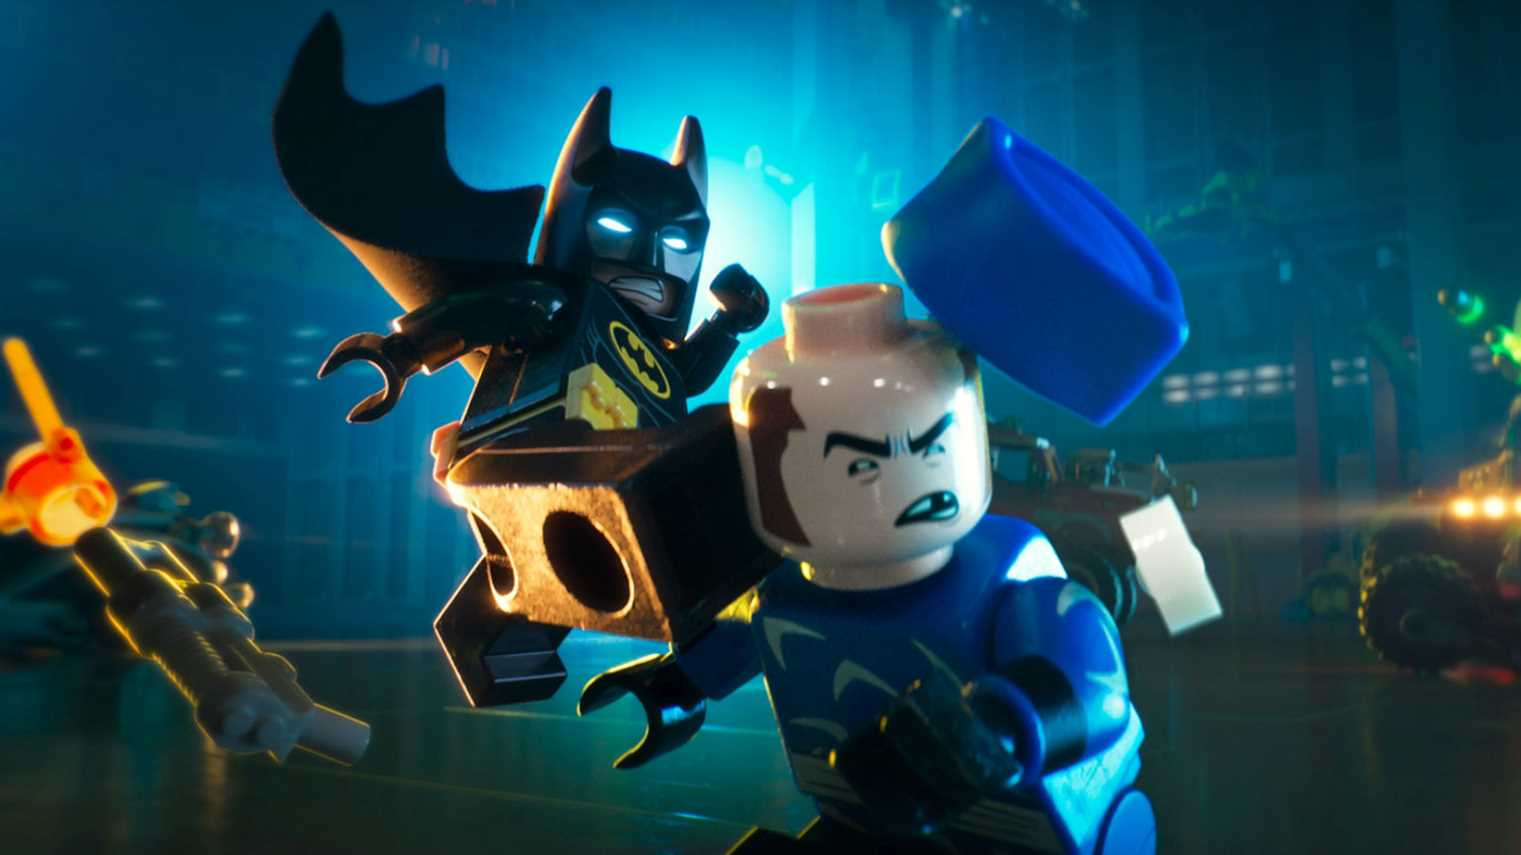 Go behind the scenes of The Lego Batman Movie